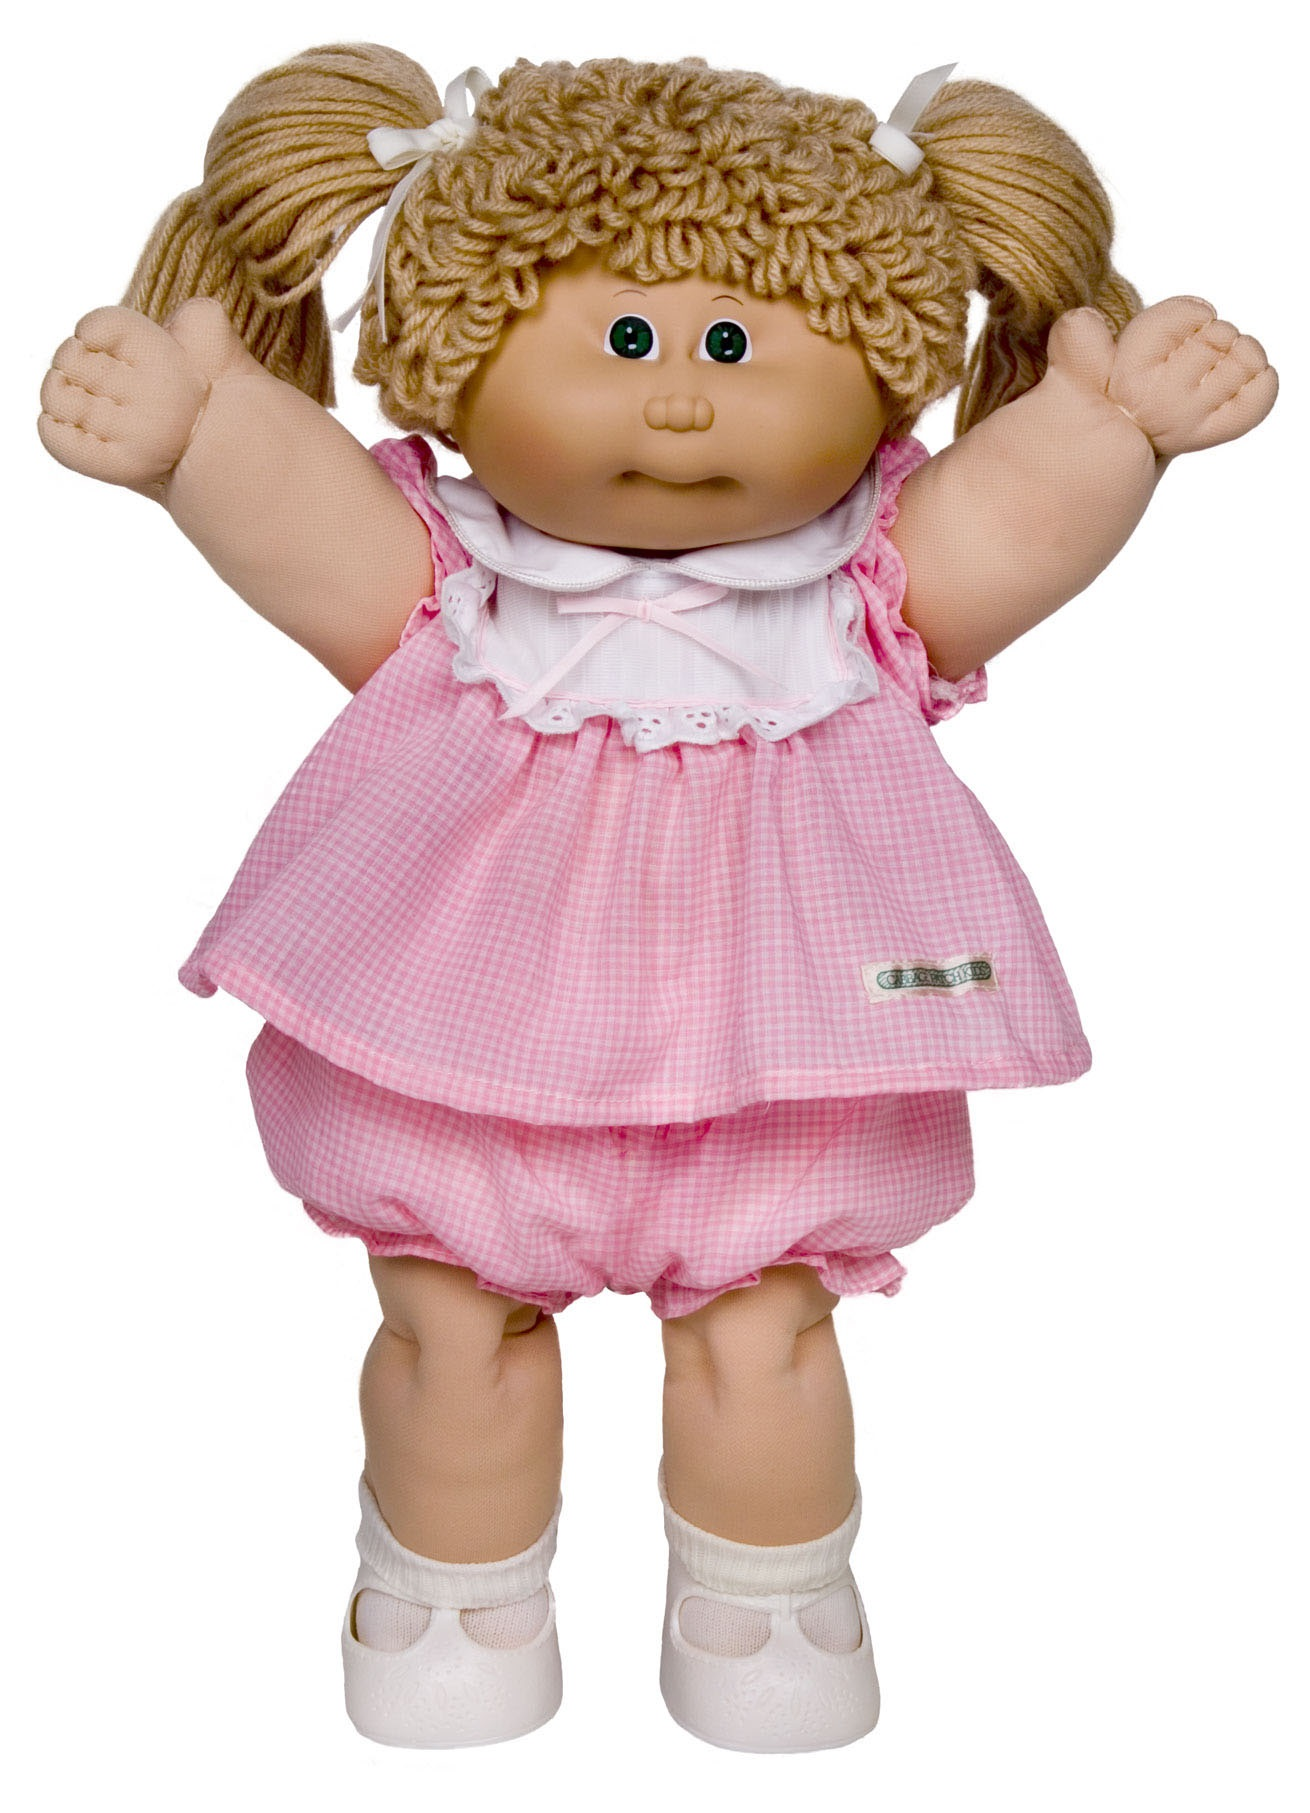 Cabbage Patch Baby Doll Clothes Patterns